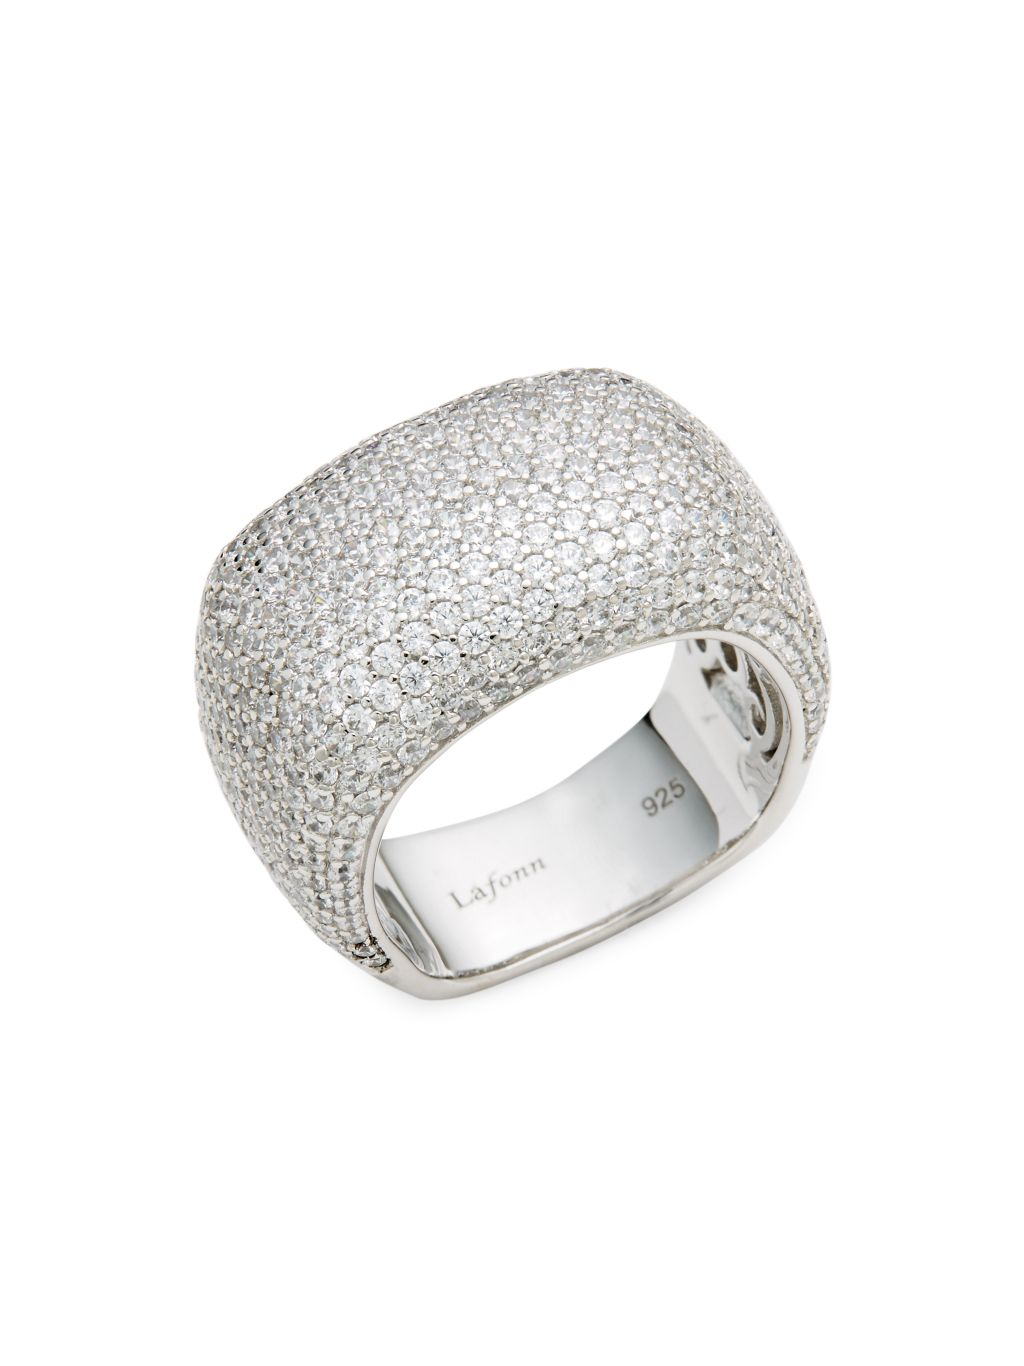 Lafonn 925 Sterling Silver Wide Band Ring